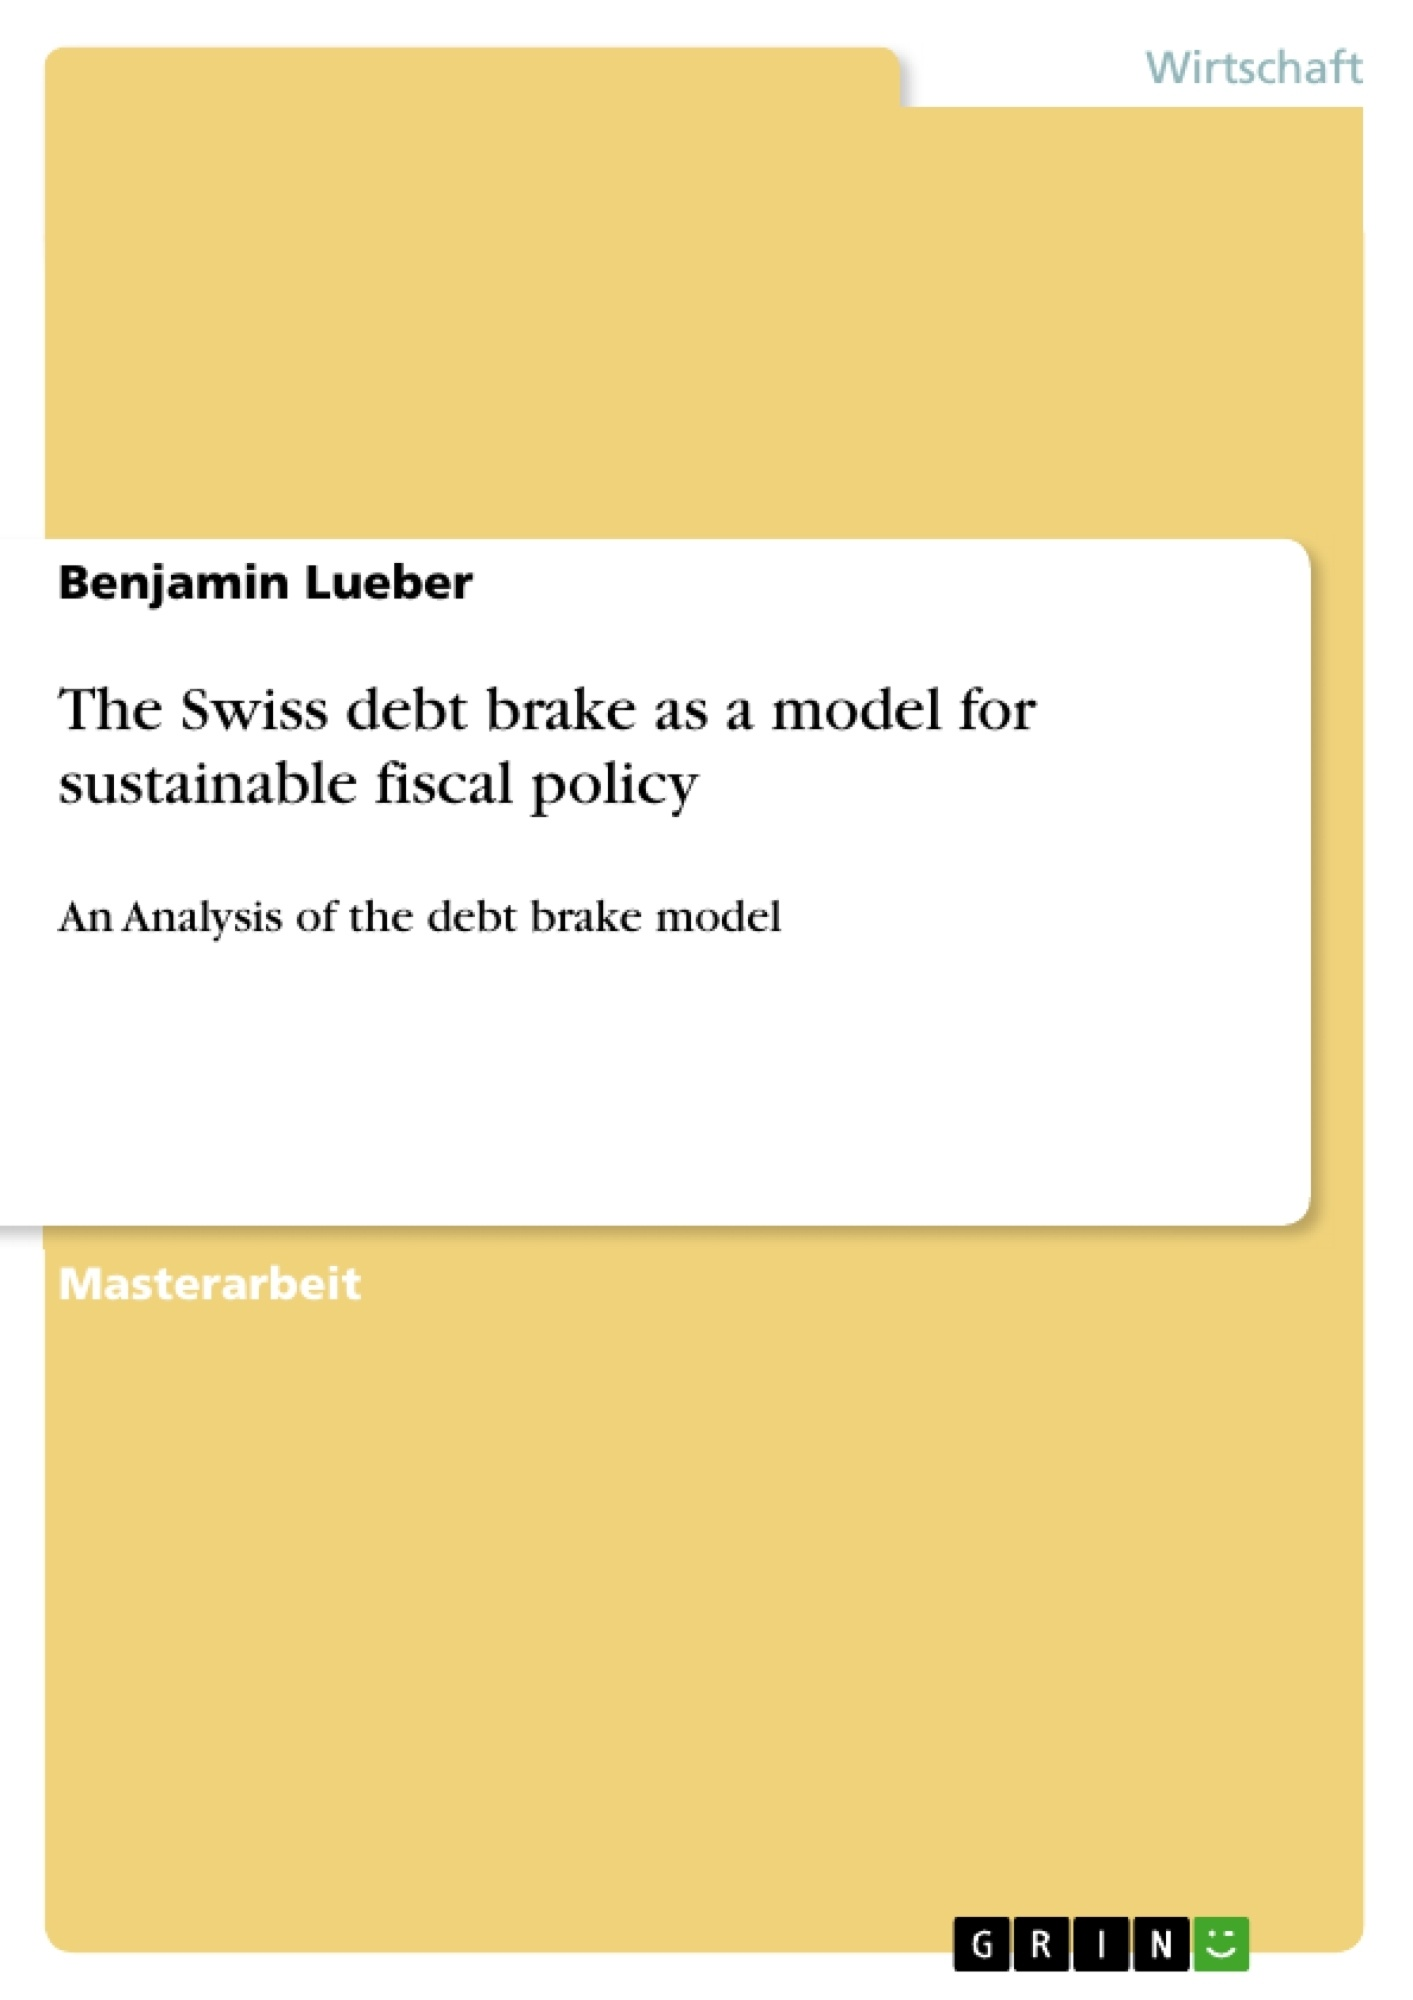 Titel: The Swiss debt brake as a model for sustainable fiscal policy